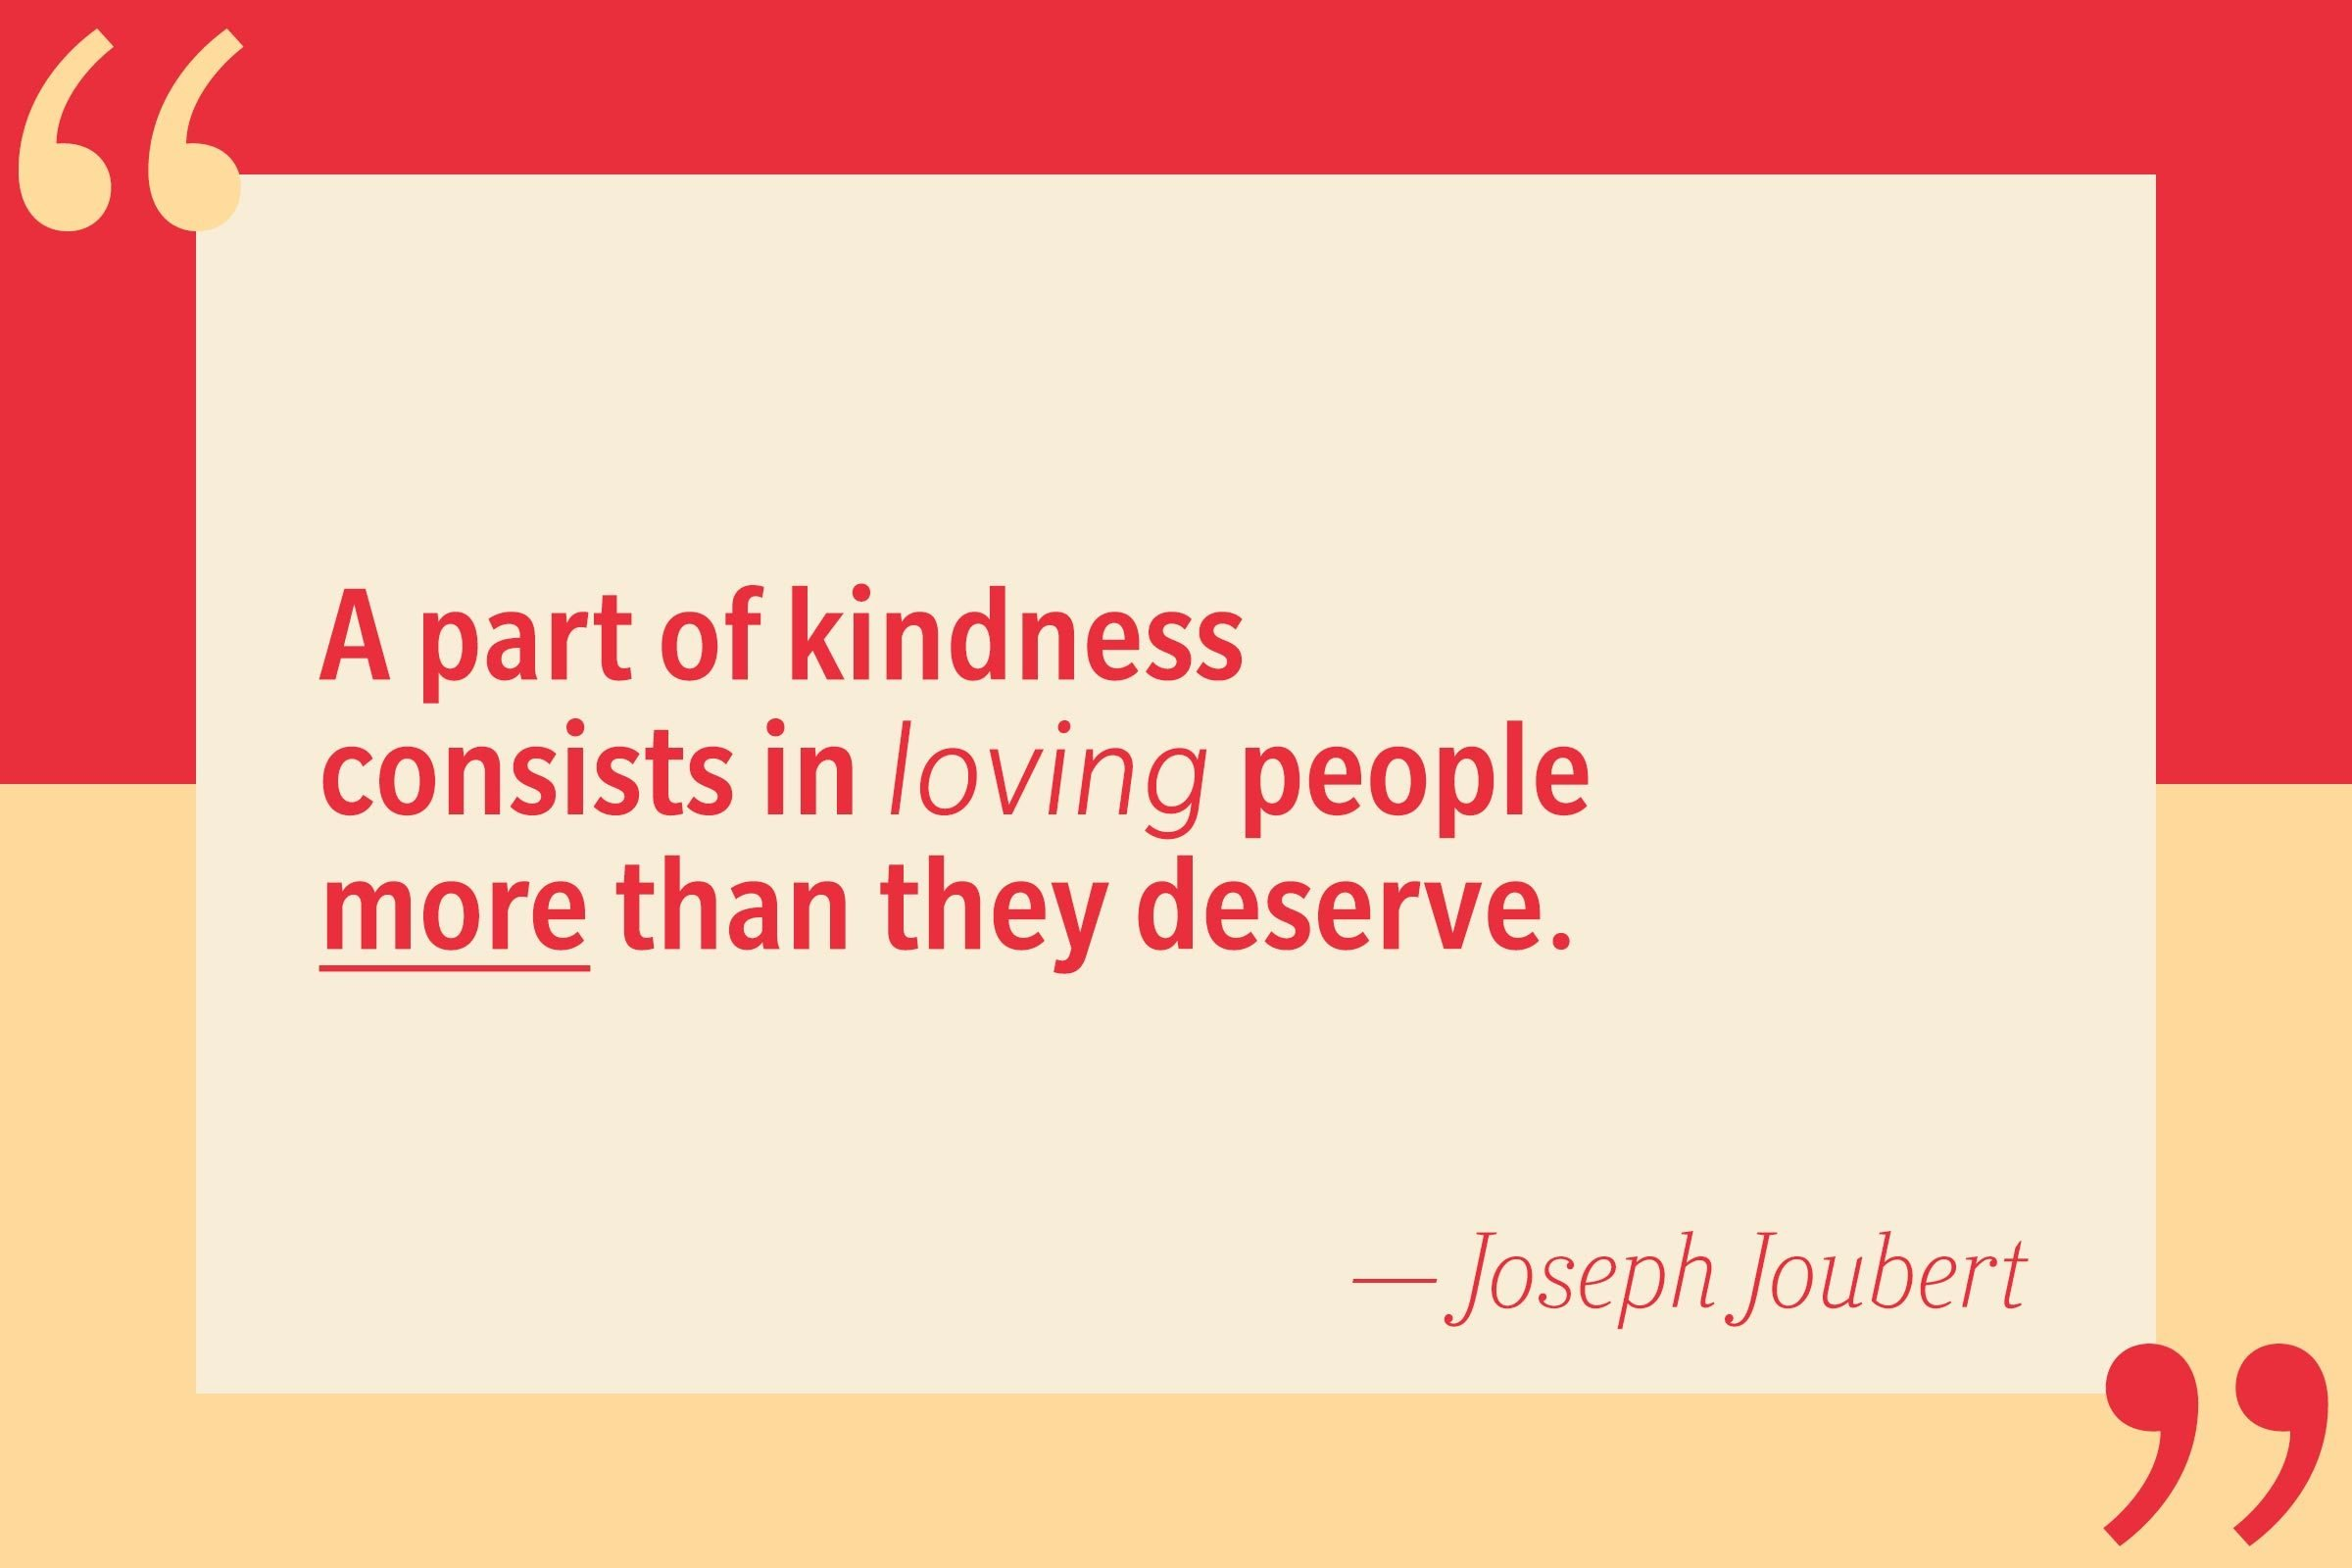 A part of kindness consists in loving people more than they deserve. — Joseph Joubert